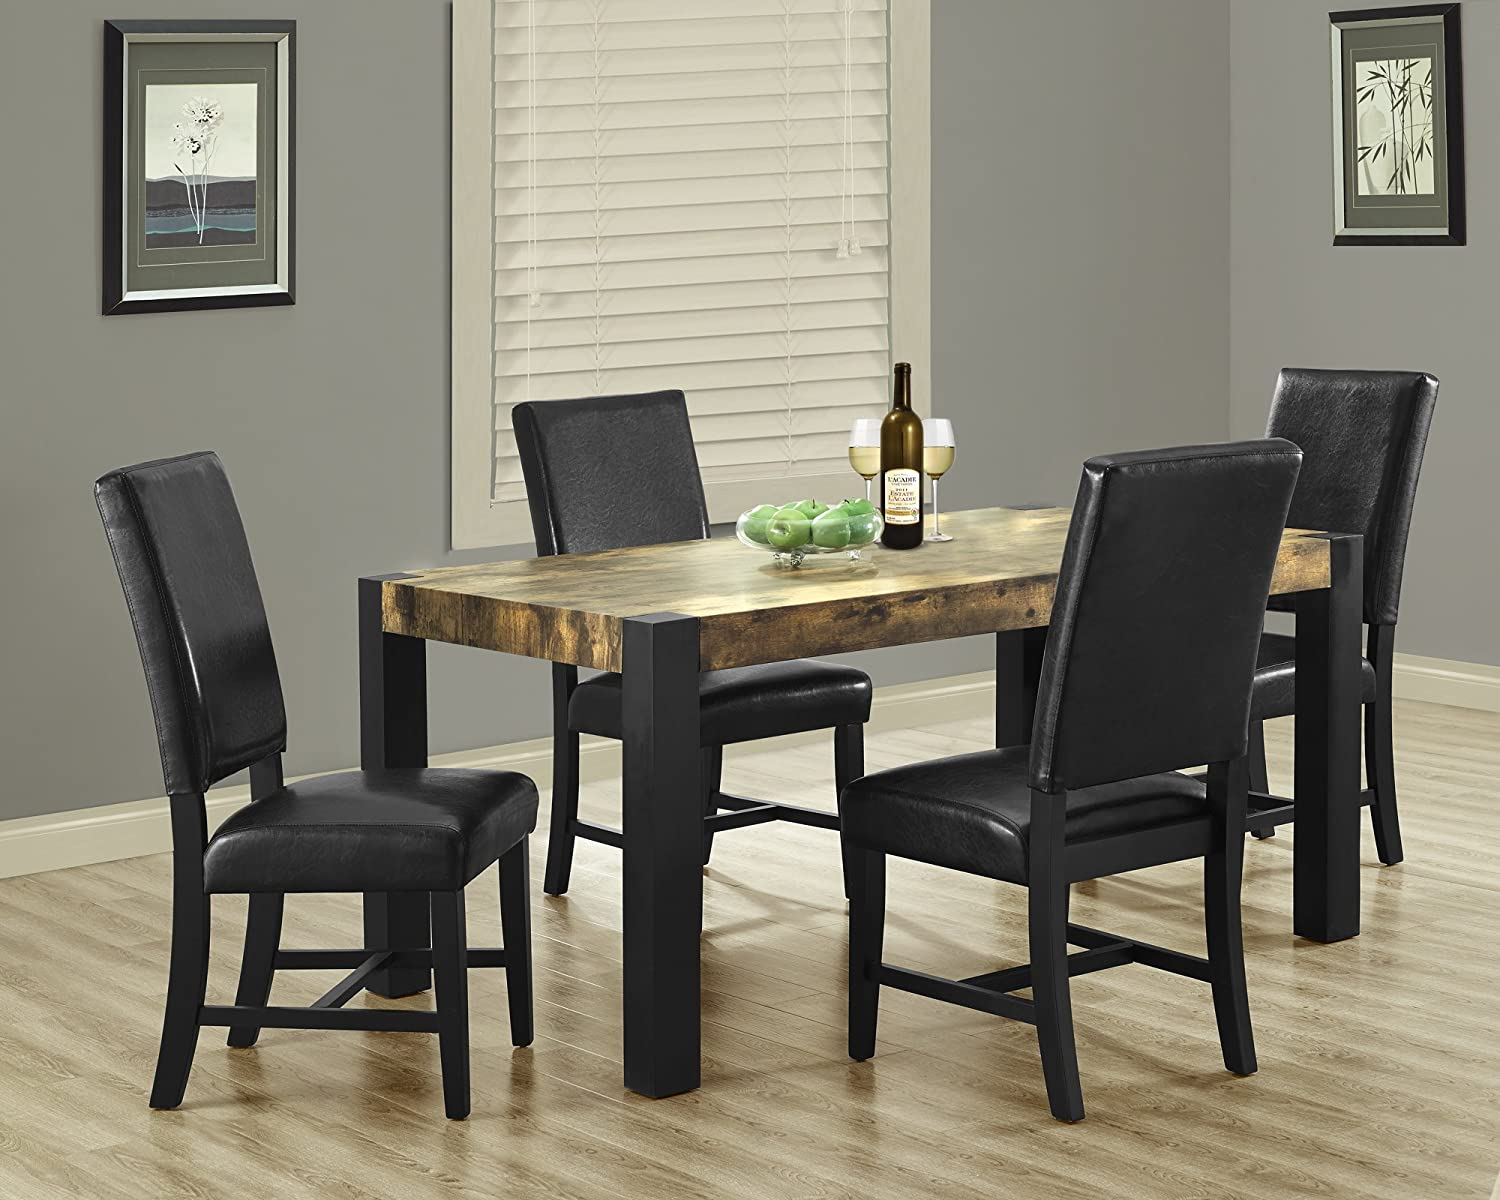 Distressed Black Kitchen Table Amazoncom Monarch Specialties Distressed Reclaimed Look Black